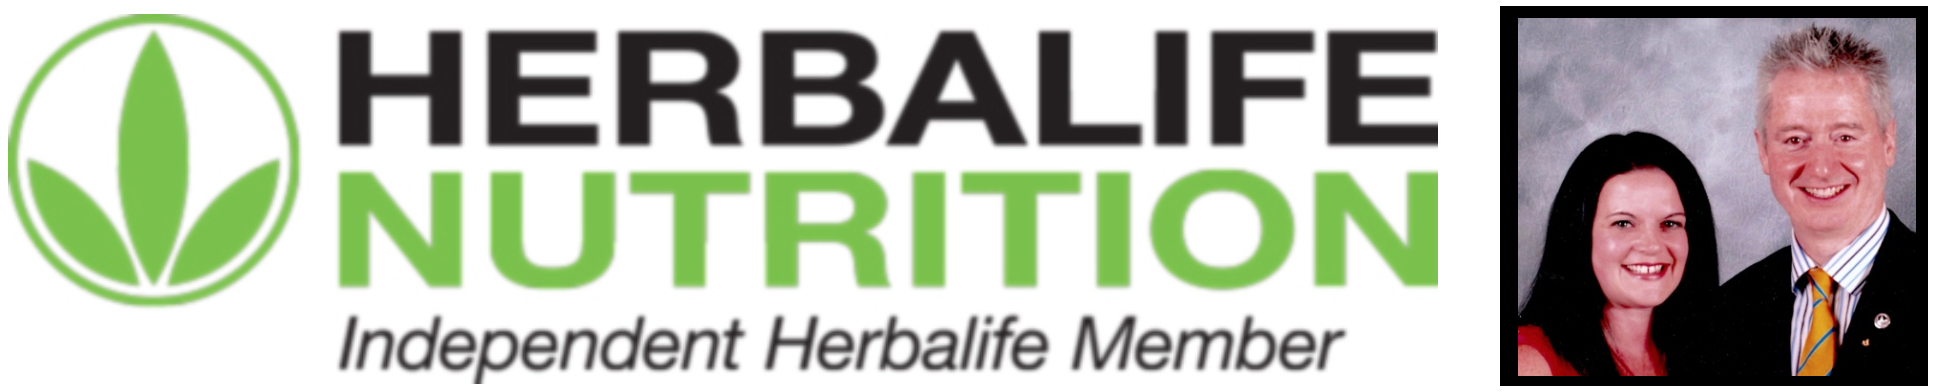 Beccy & Paul Hopfensperger Herbalife Independent Members since 1987